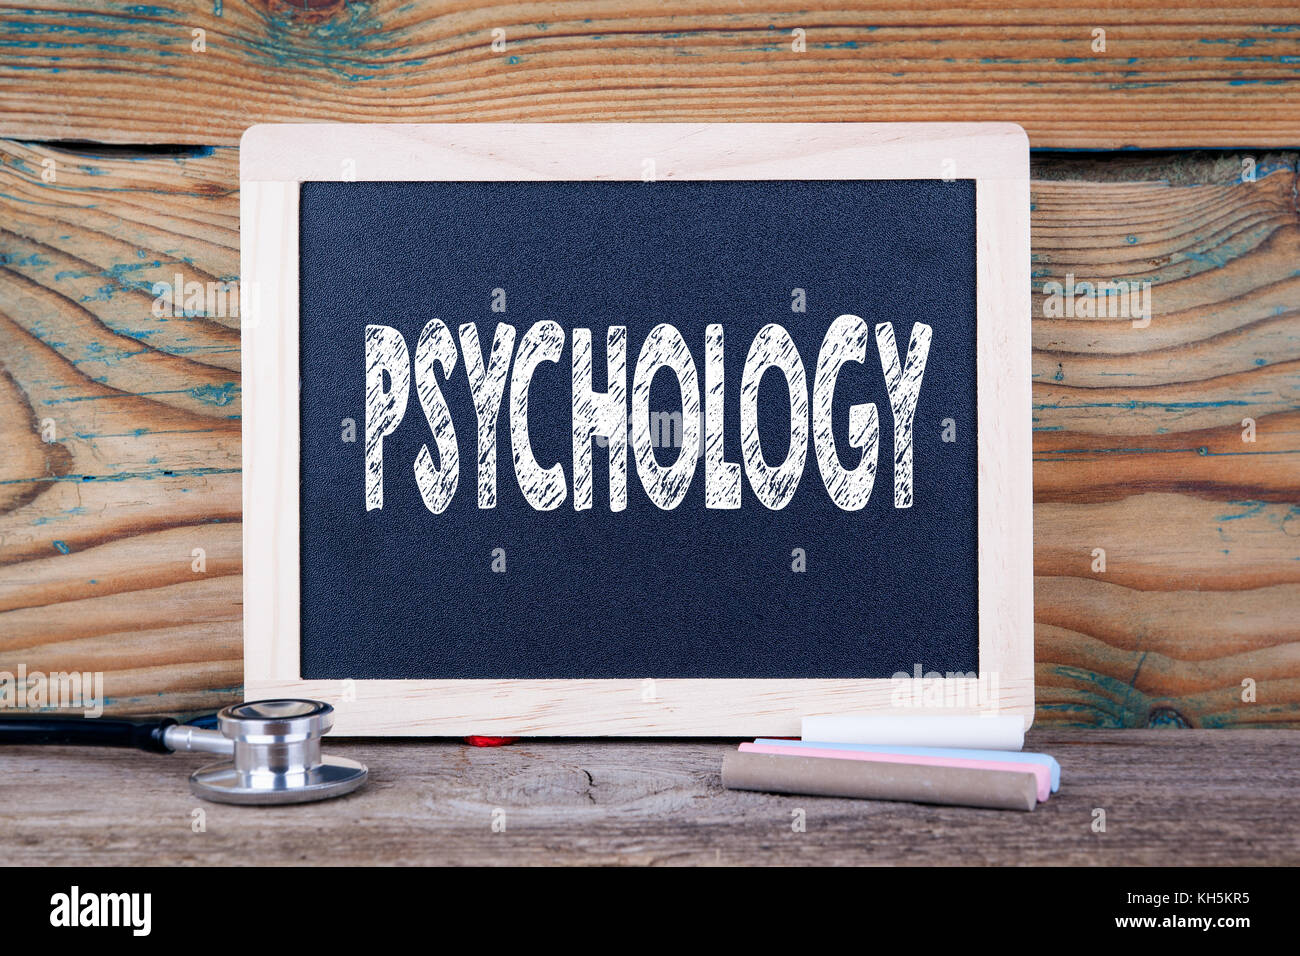 Psychology. Health concept. Chalkboard on a wooden background - Stock Image